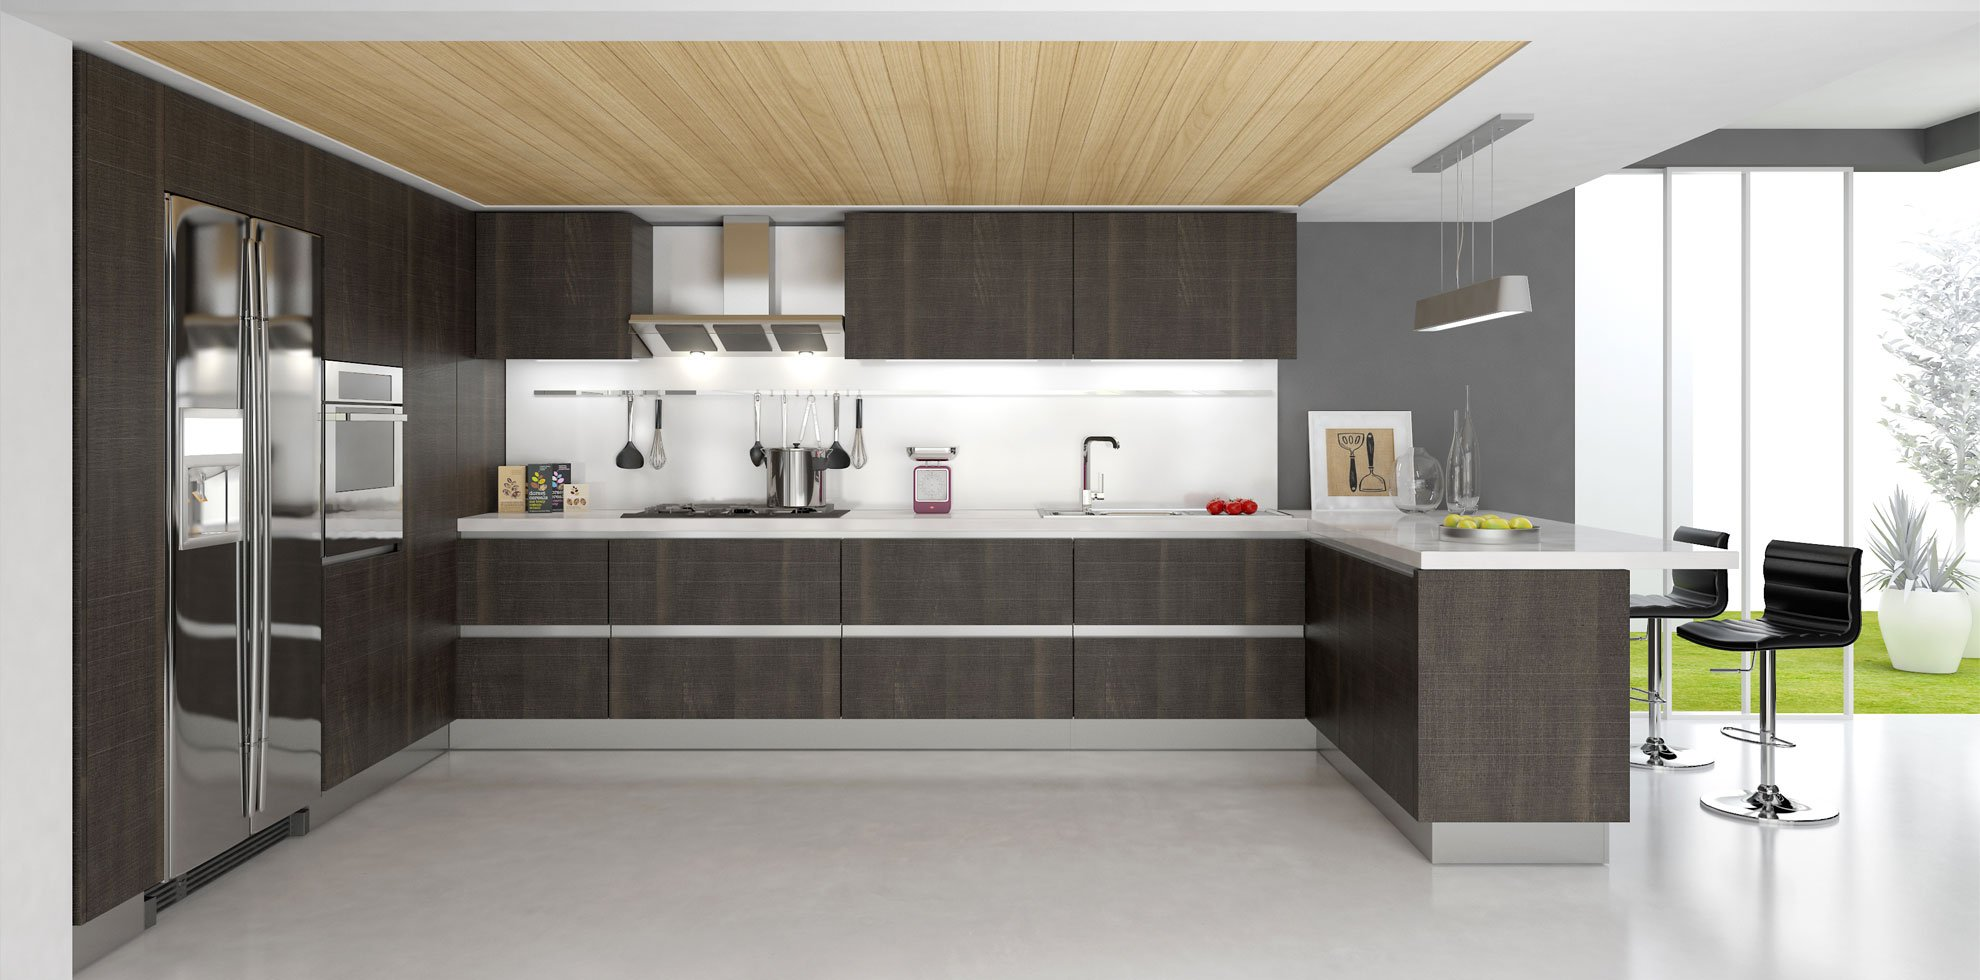 20 prime examples of modern kitchen cabinets for Modern kitchen design tamilnadu